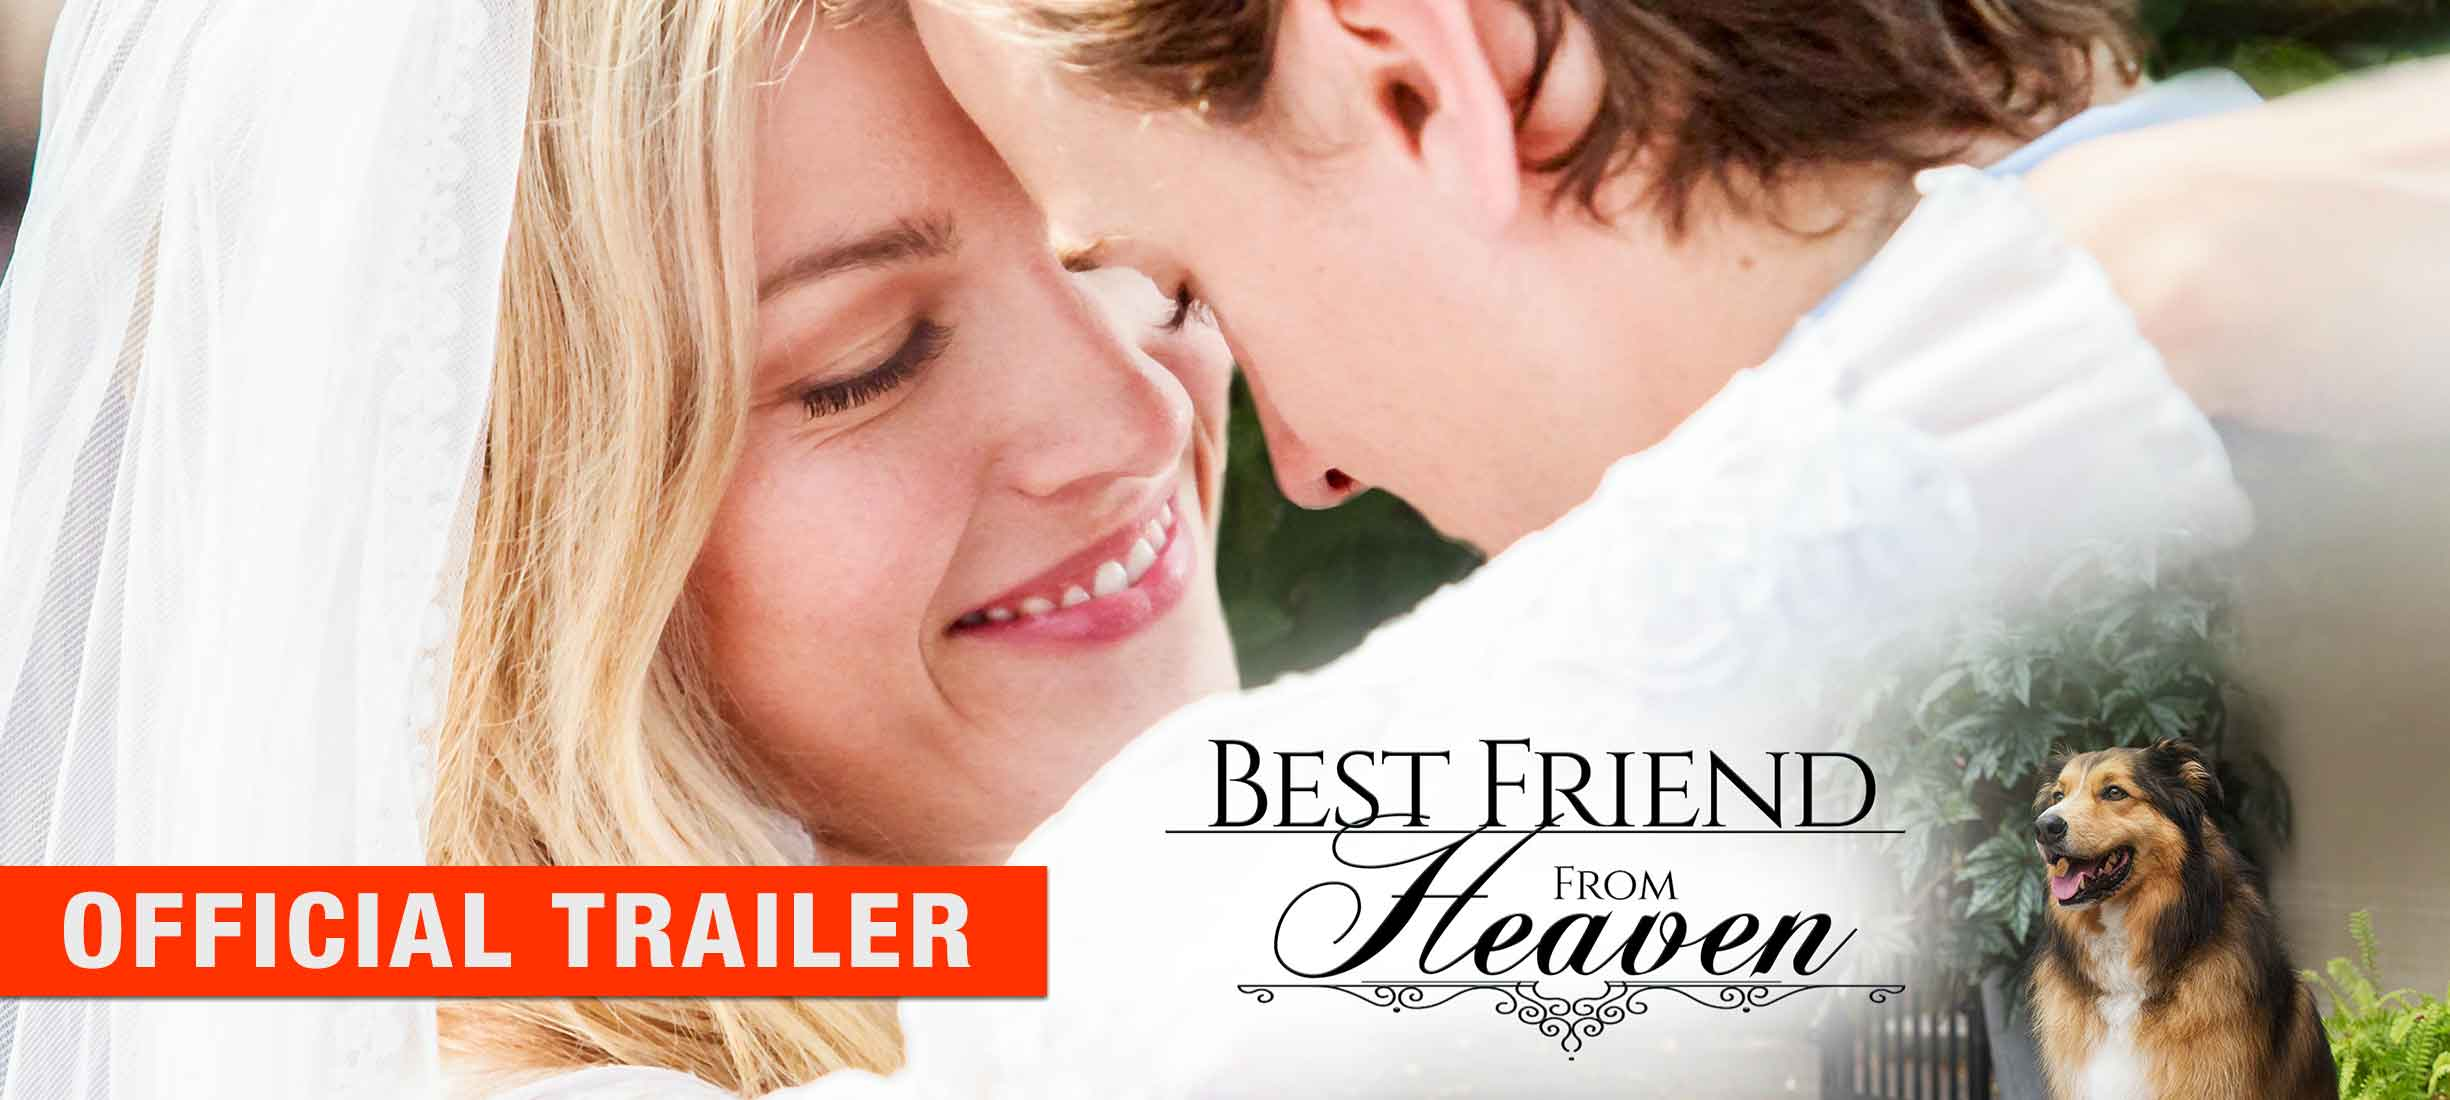 Best Friend from Heaven: Trailer